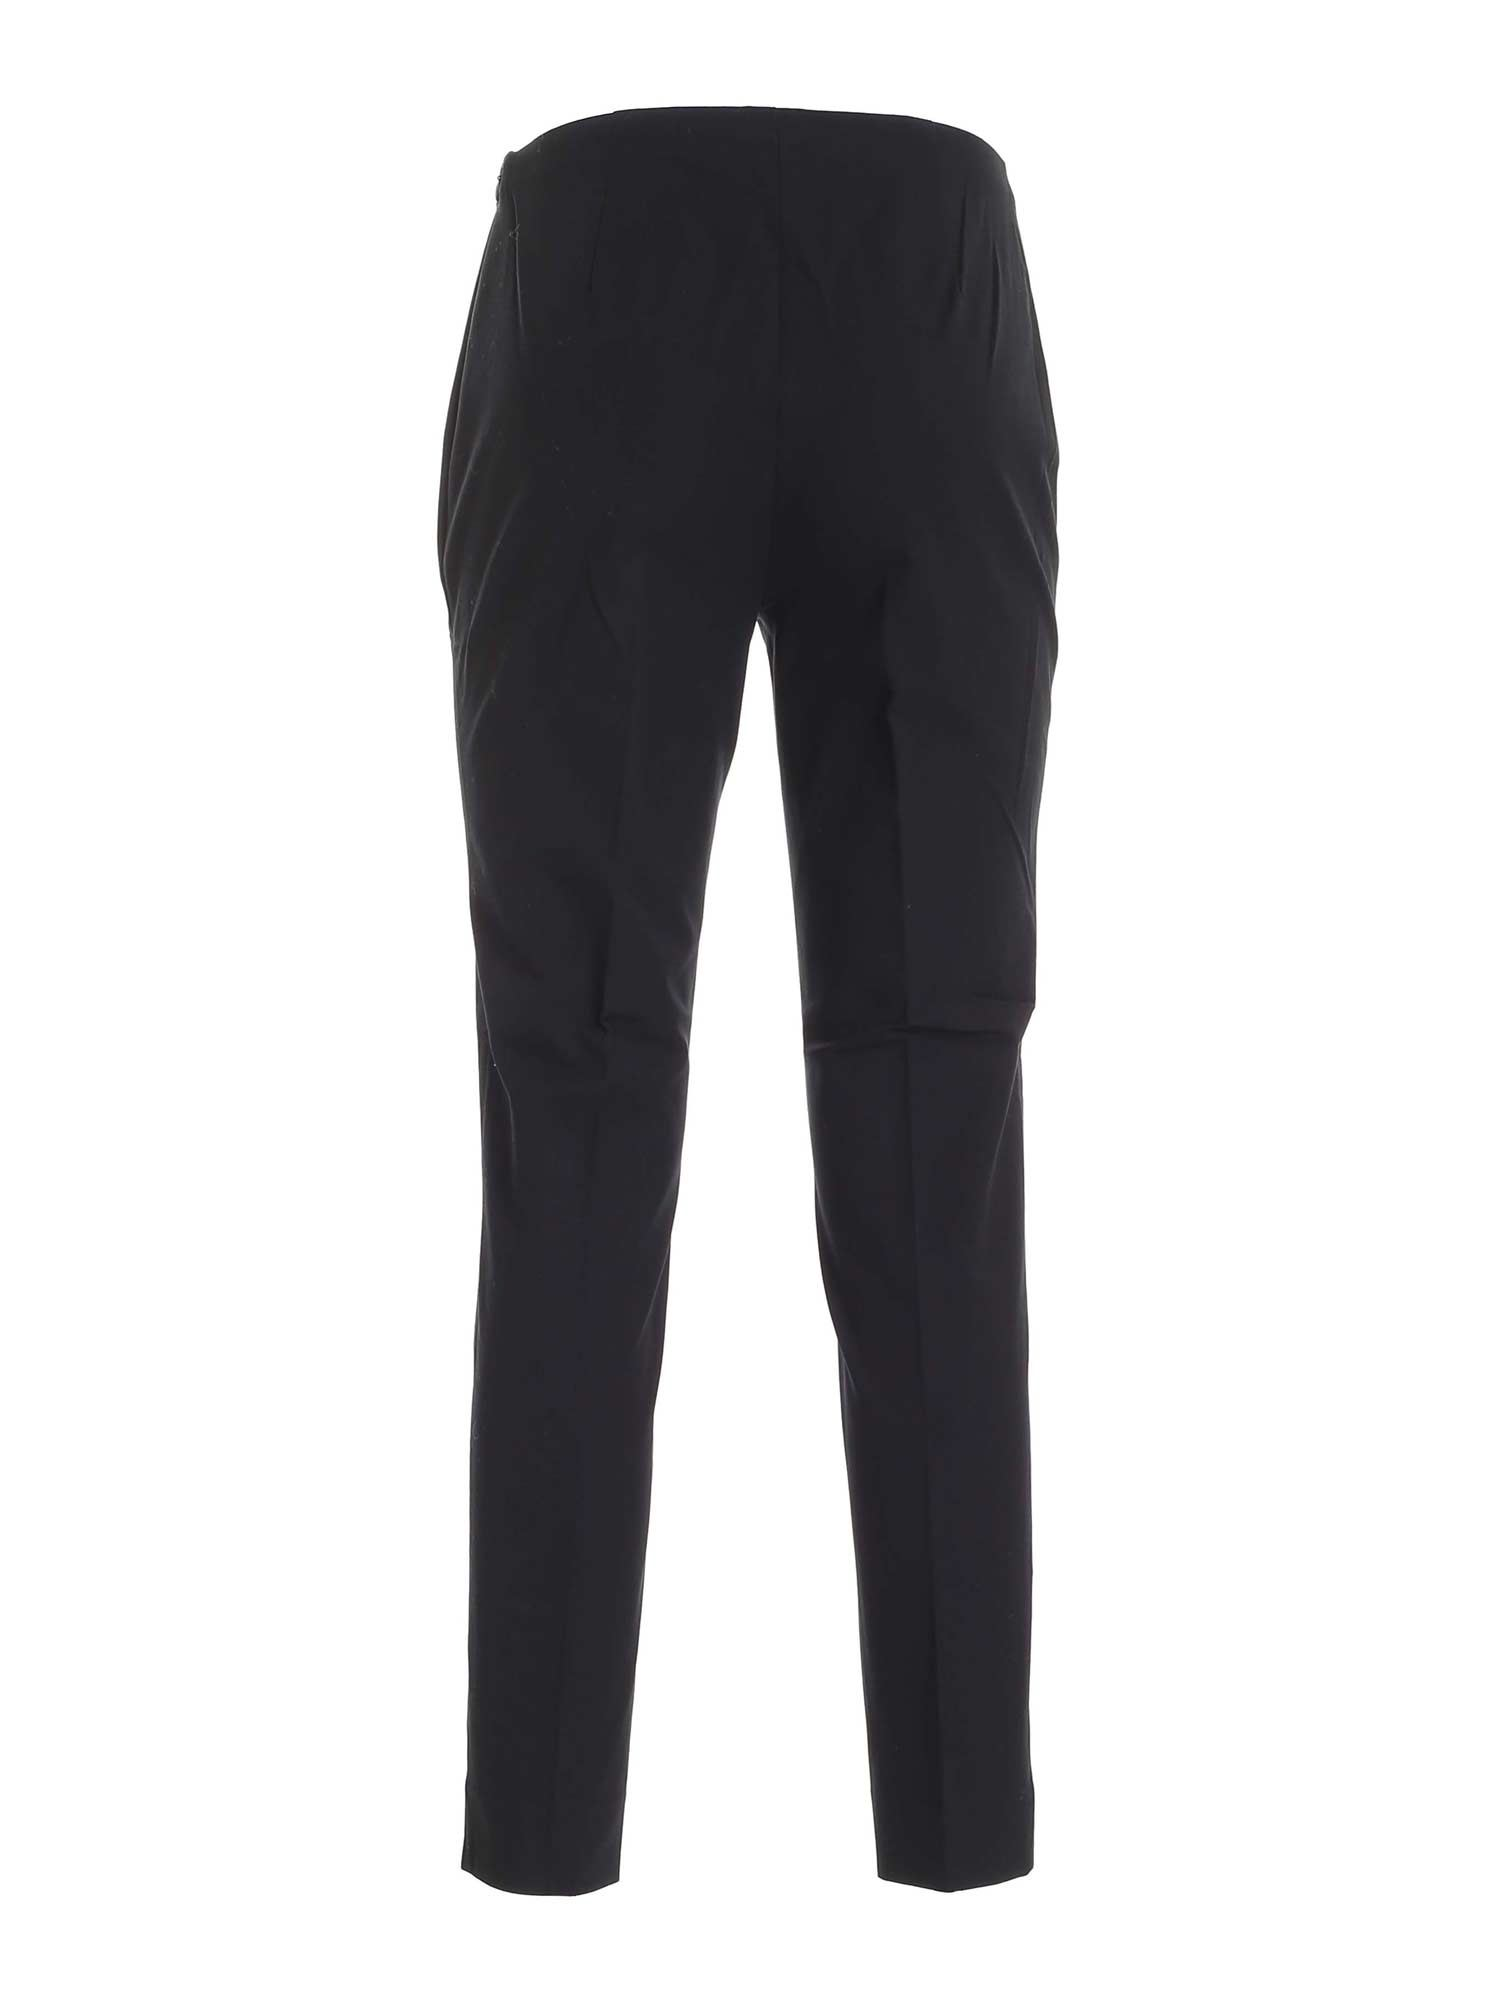 SLIM FIT BLACK PANTS WITH VENTS POLO RALPH LAUREN | 20000005 | 211782173001